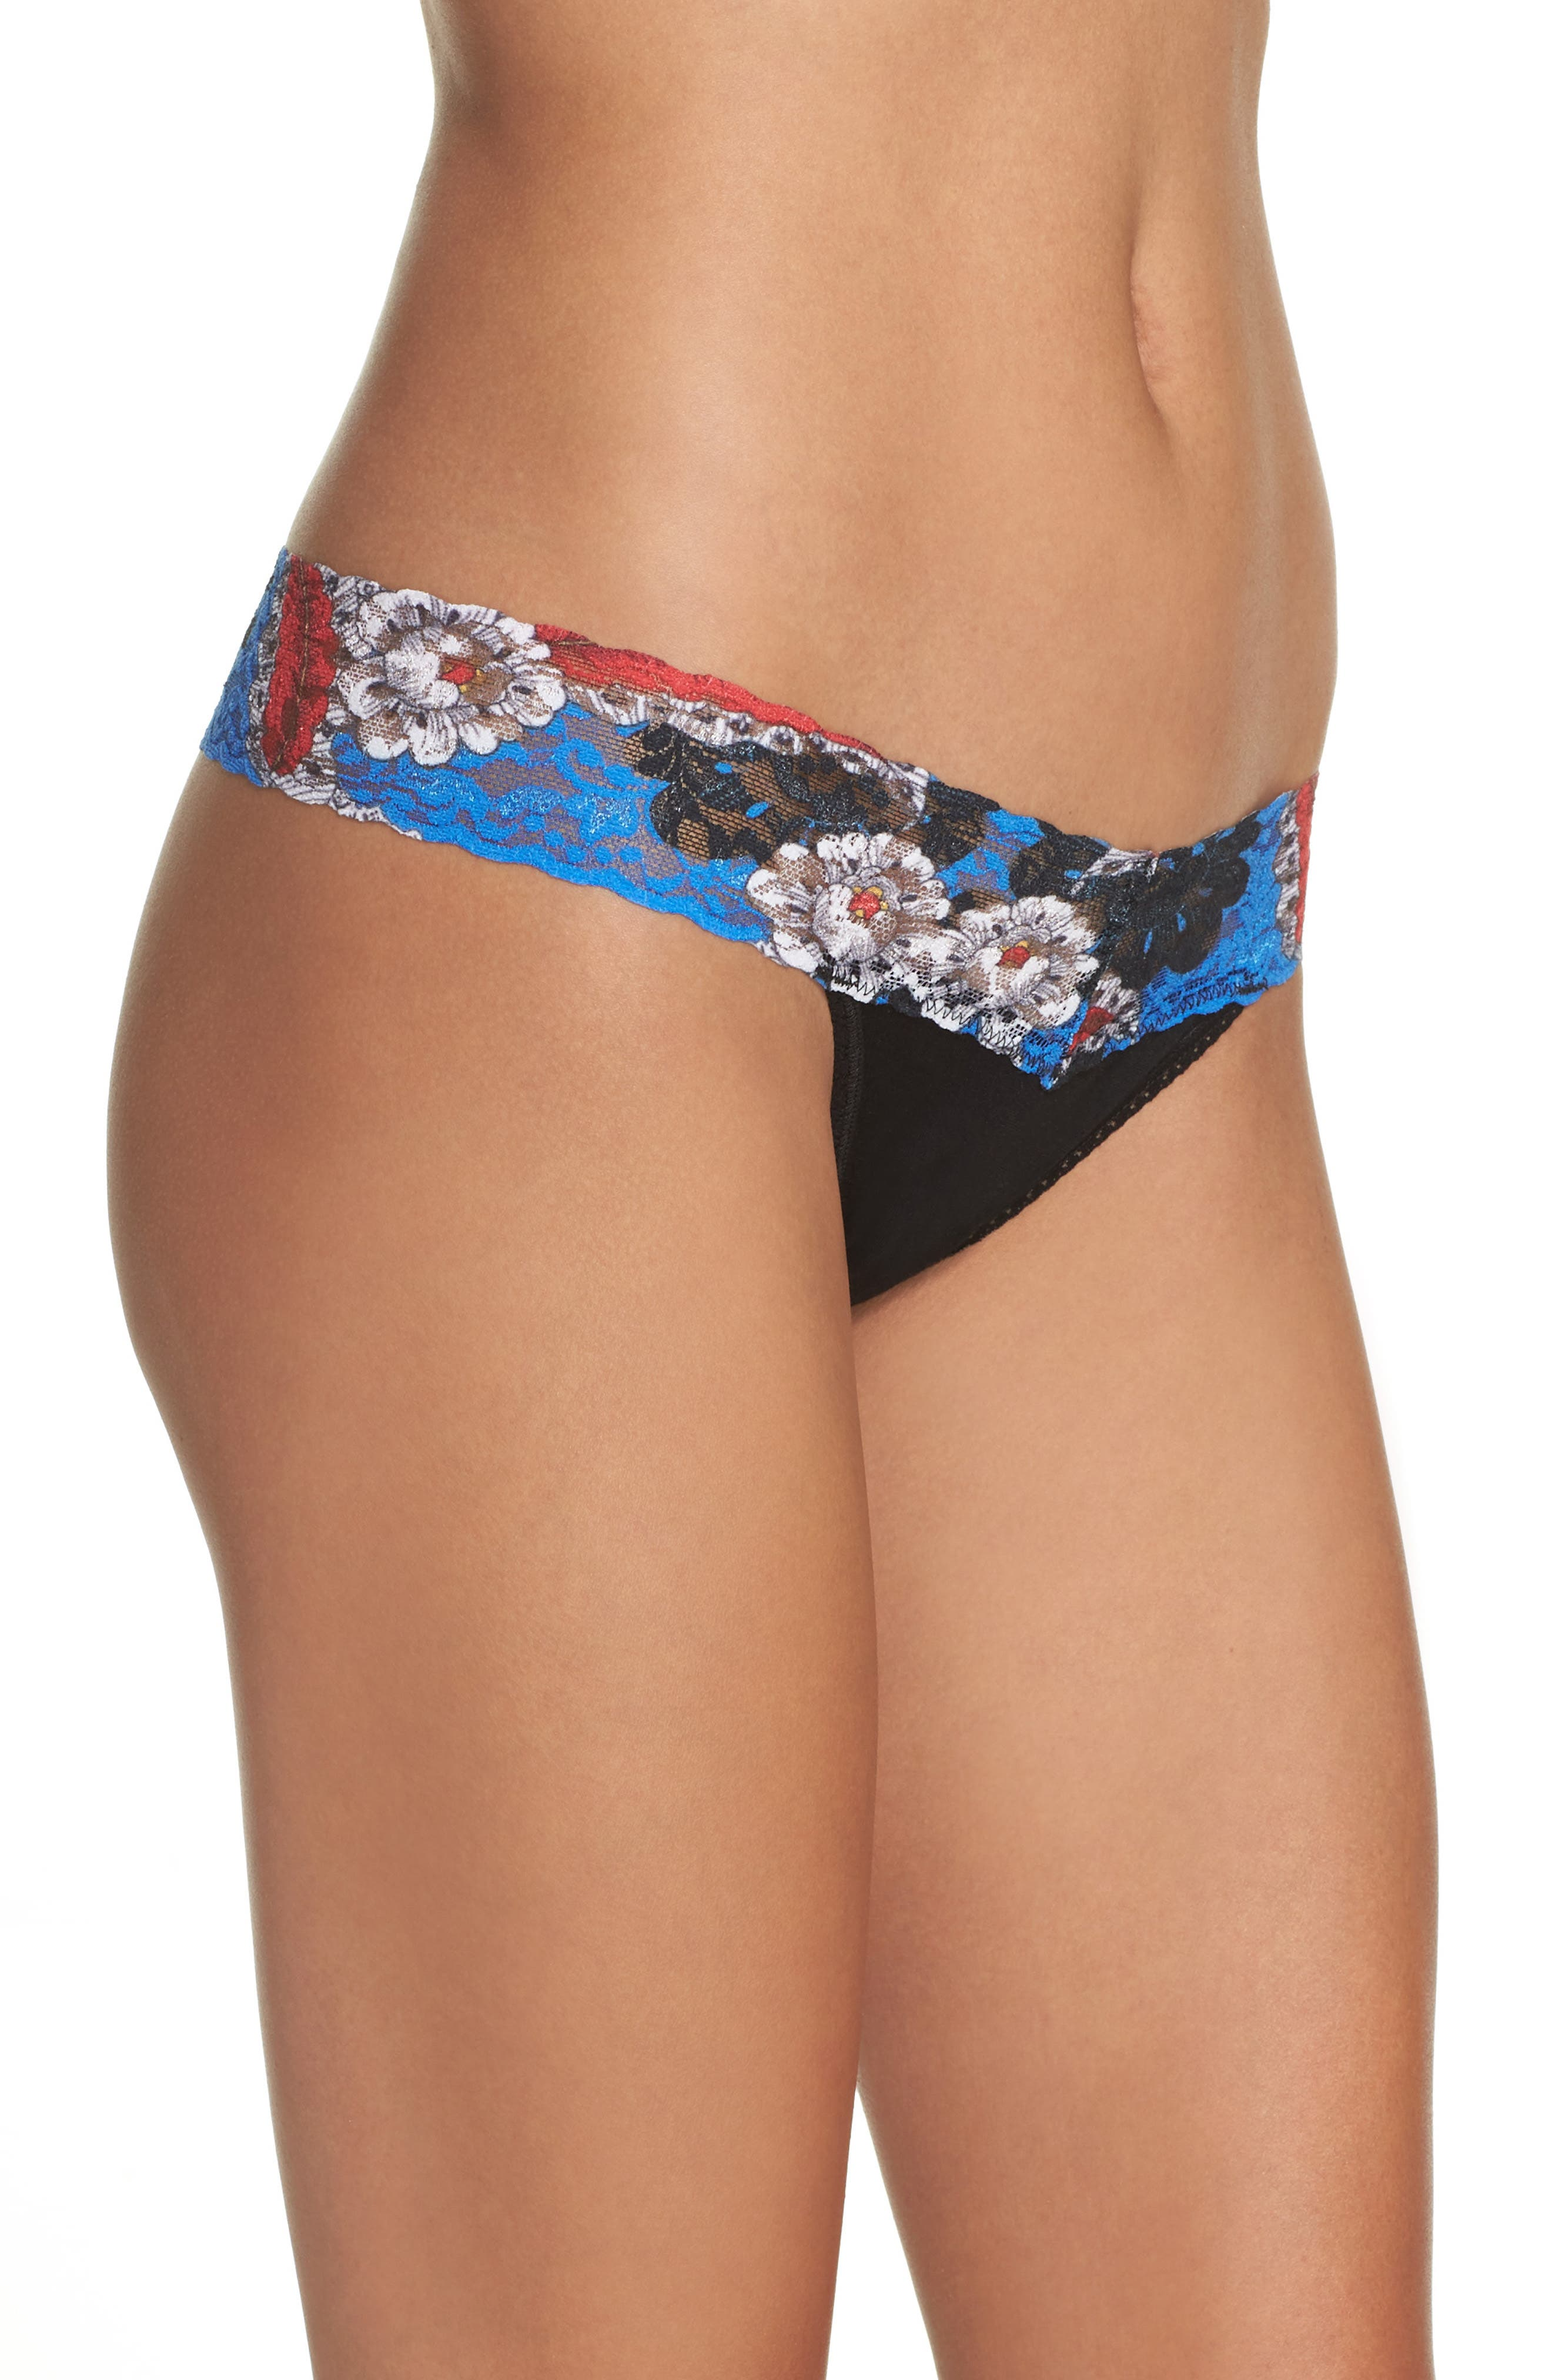 Alternate Image 3  - Hanky Panky Mid Rise Modal Thong with Lace Trim